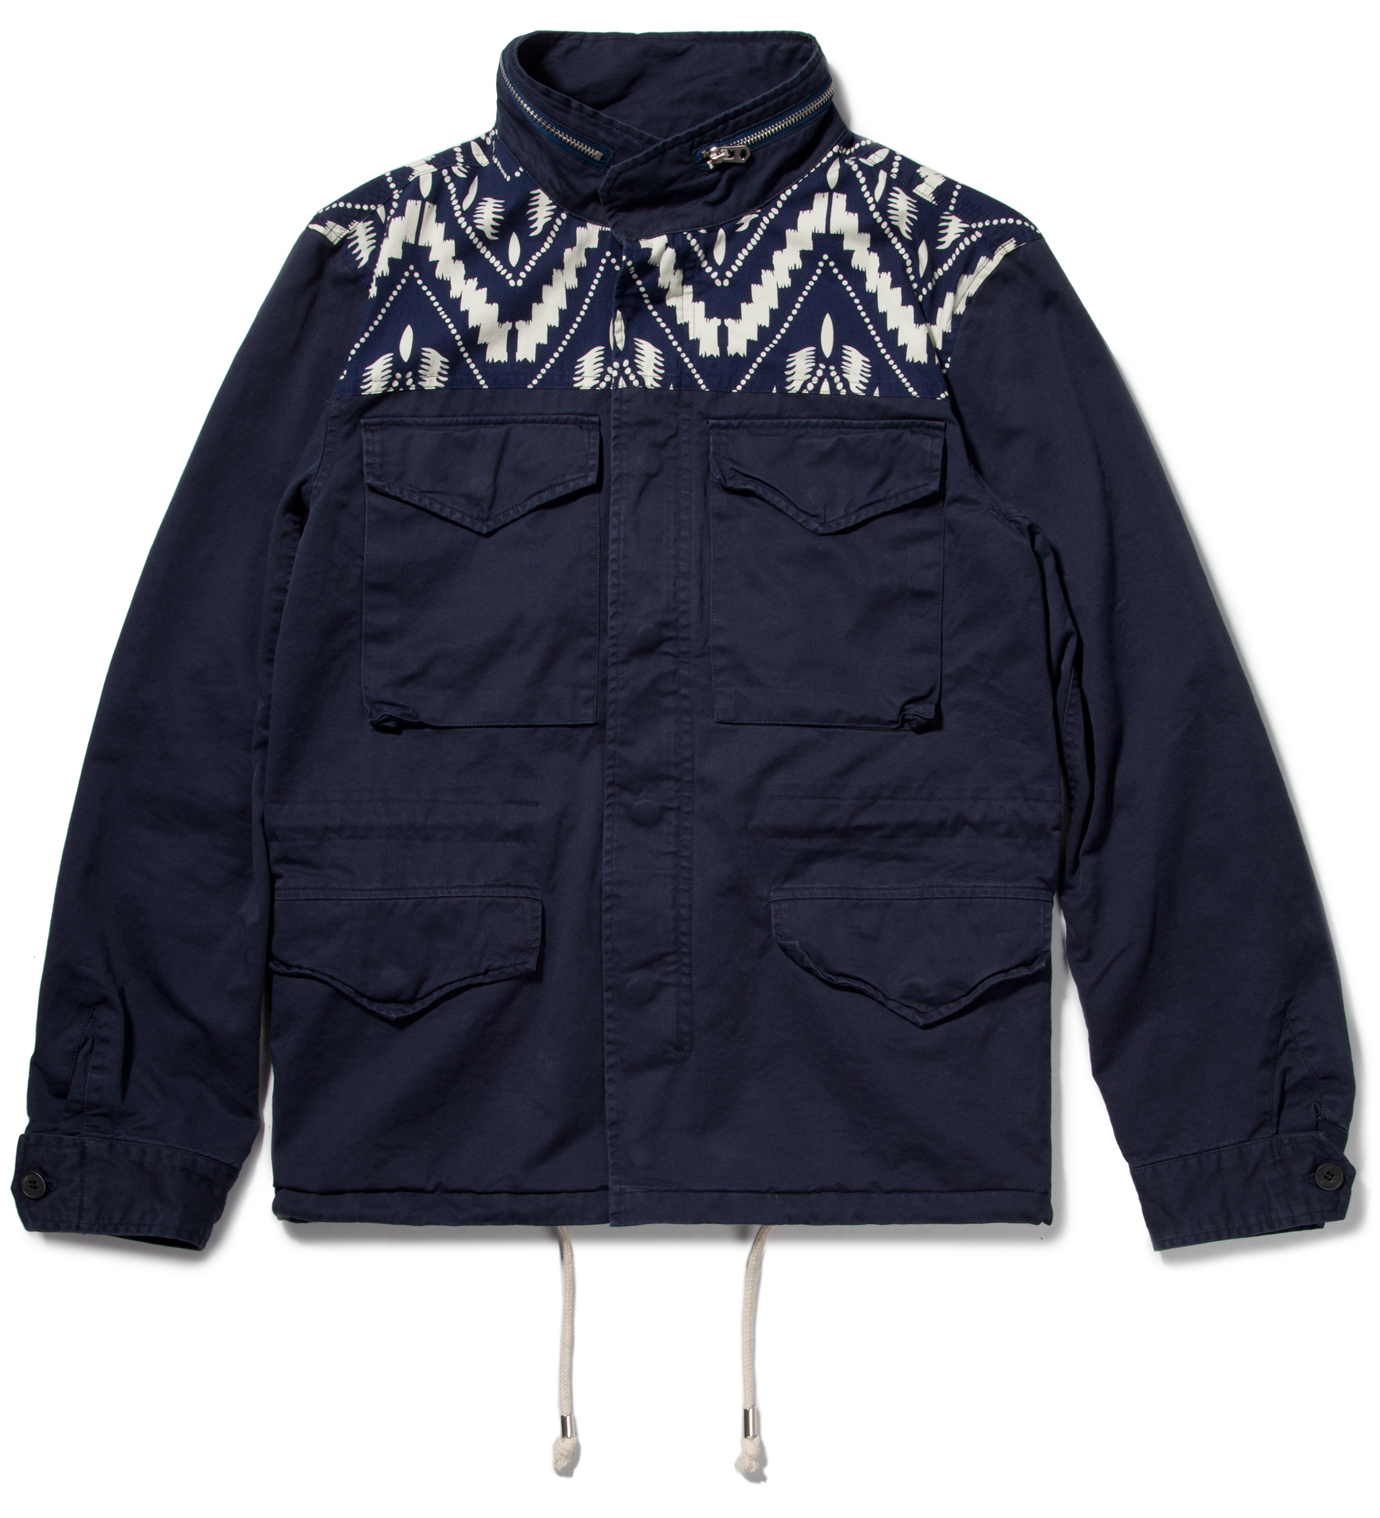 Shades of Grey by Micah Cohen Navy Twill M65 Jacket